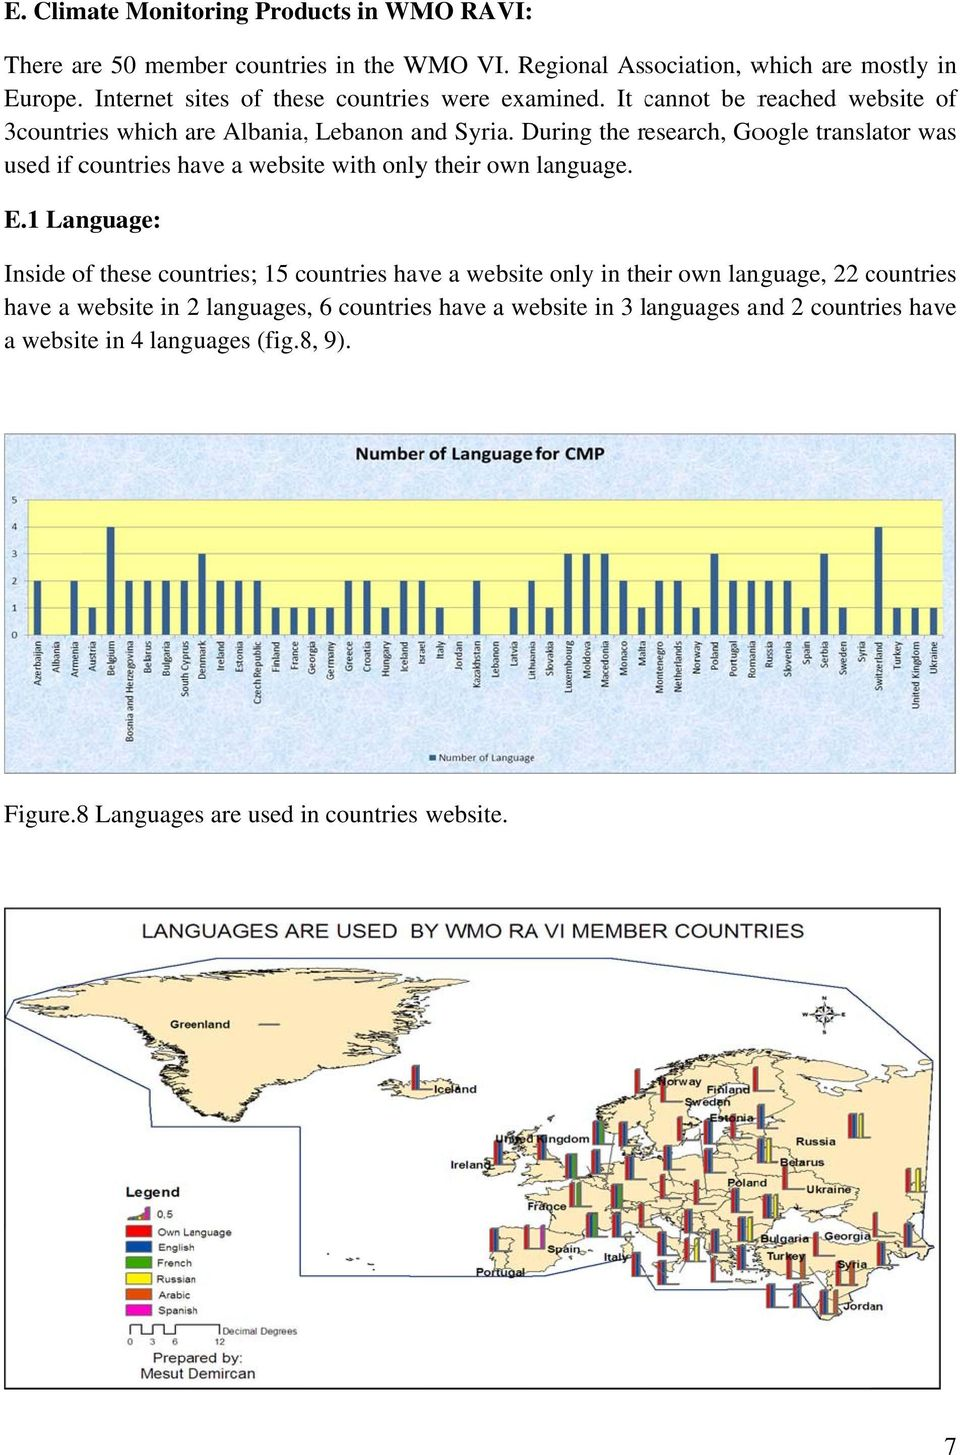 During the research, Google translator was used if countries have a website with onlyy their own language. E.